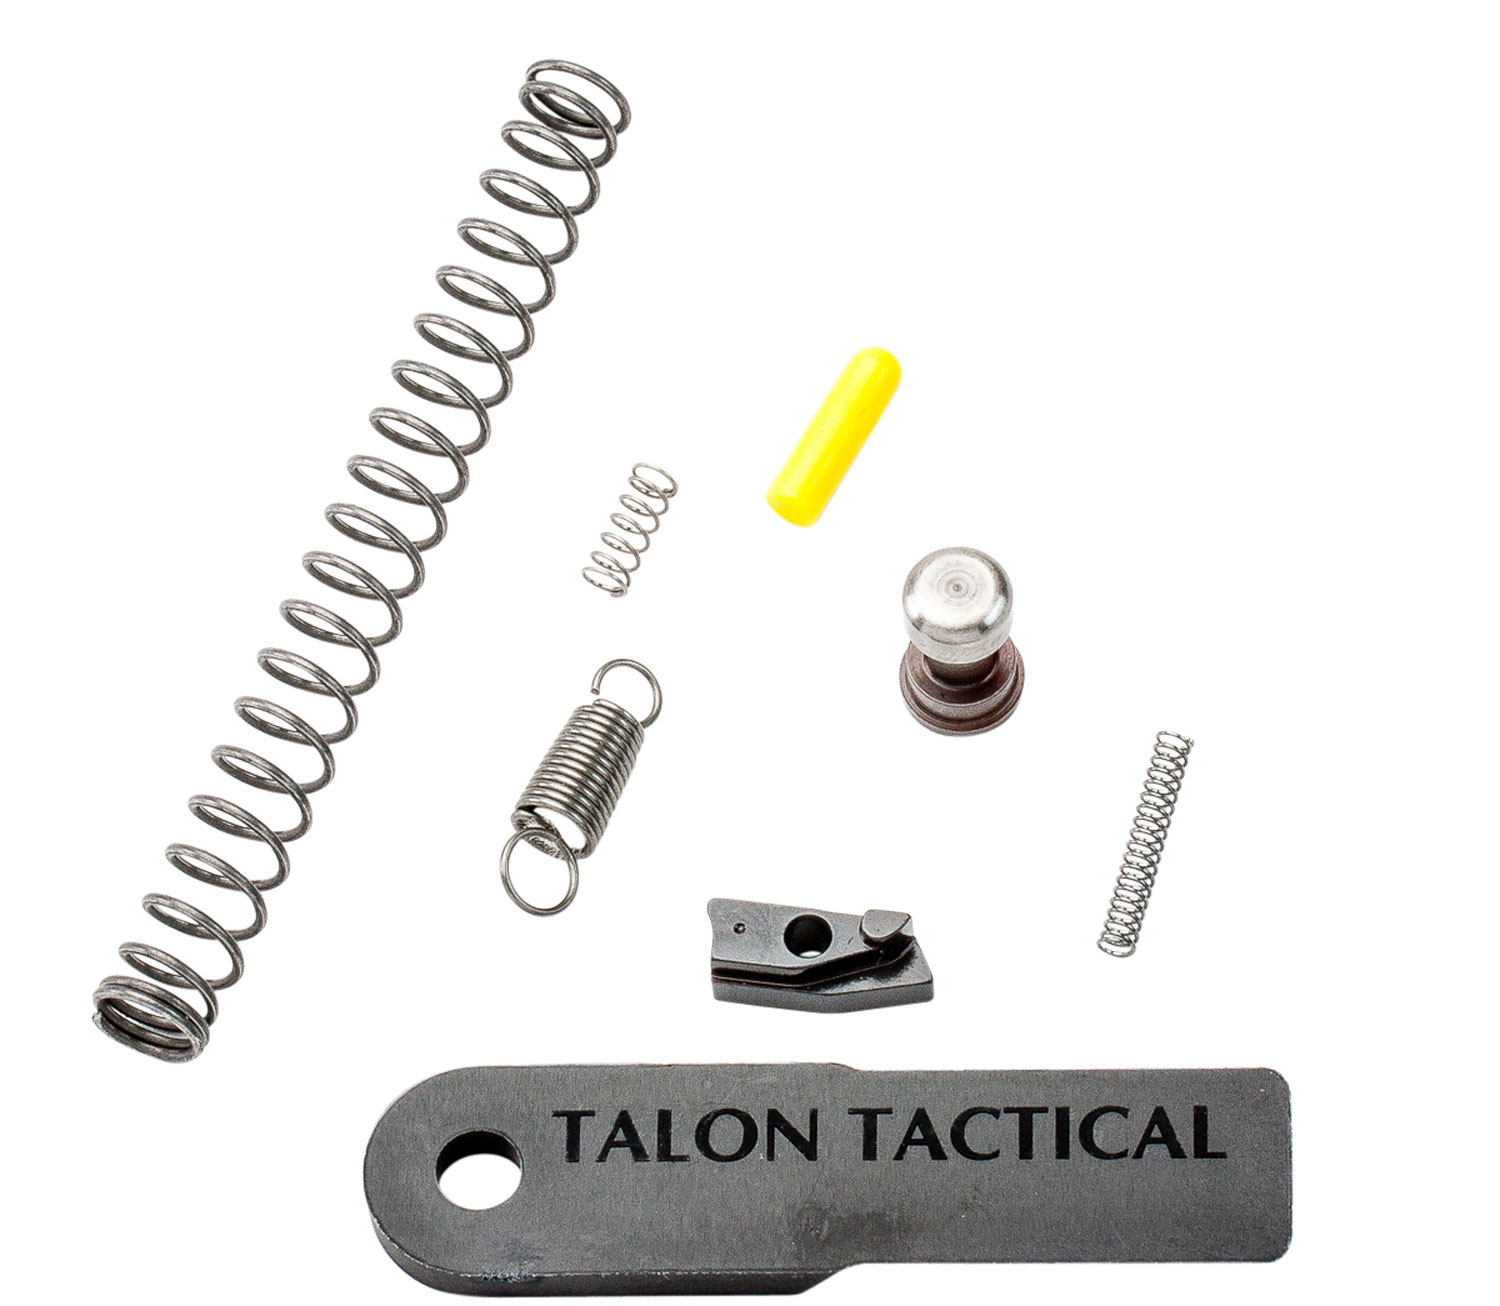 APEX TACTICAL SPECIALTIES 100072 Competition Action Enhancement Kit S&W M&P 9,40 Metal 1 Kit